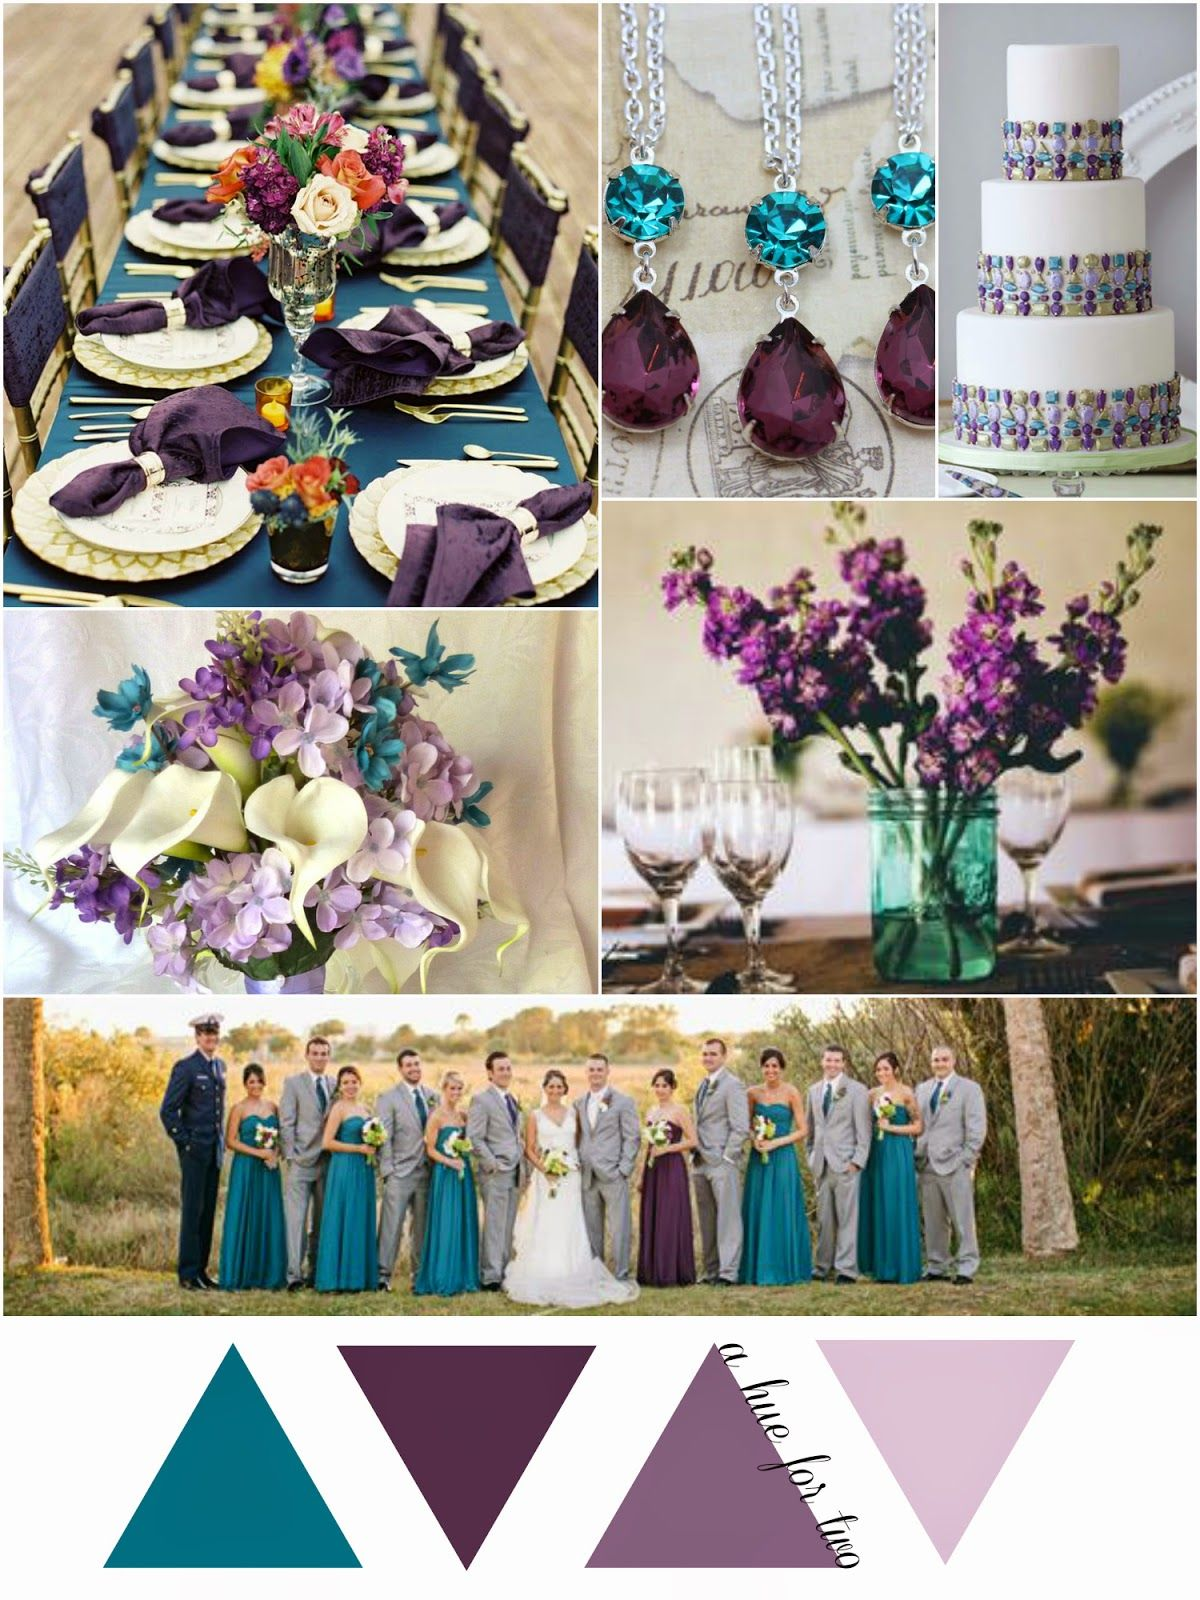 Teal Eggplant And Lavender Wedding Colors Colour Scheme A Hue For Two